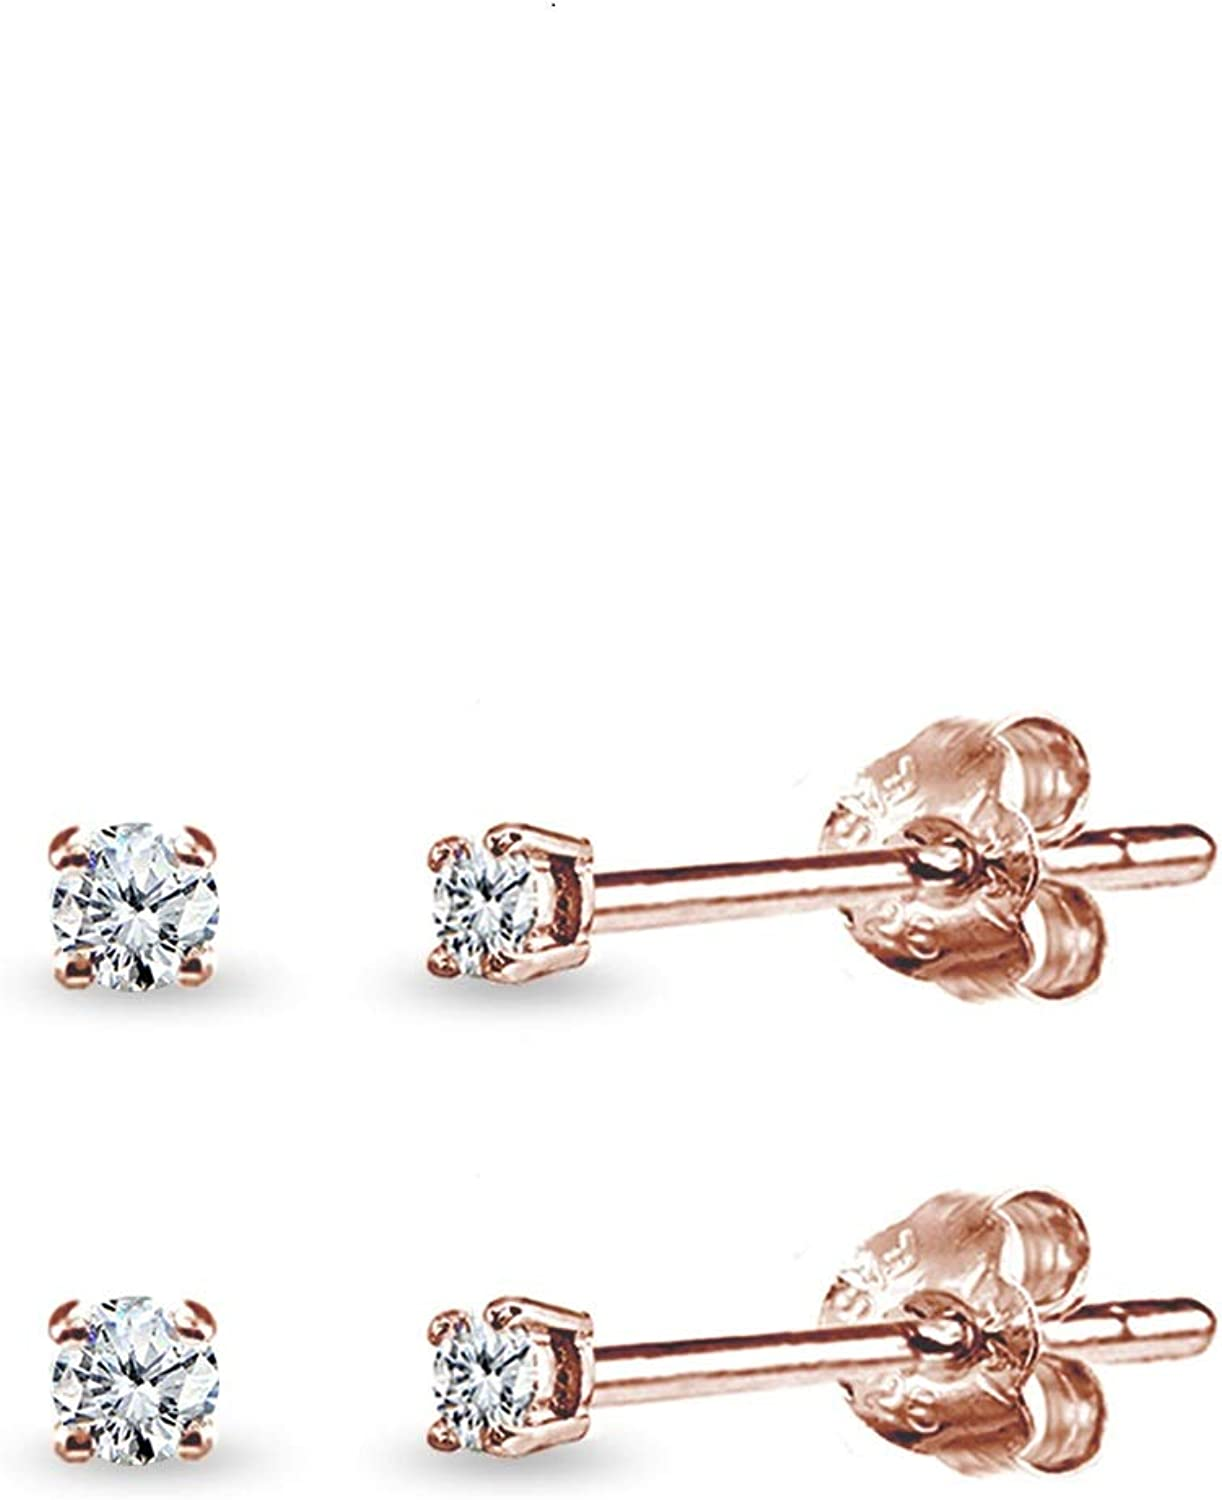 Rose Gold Flashed Sterling Silver Cubic Zirconia Round 2mm Tiny Unisex Stud Earrings Set Of 2 Pairs Jewelry Amazon Com